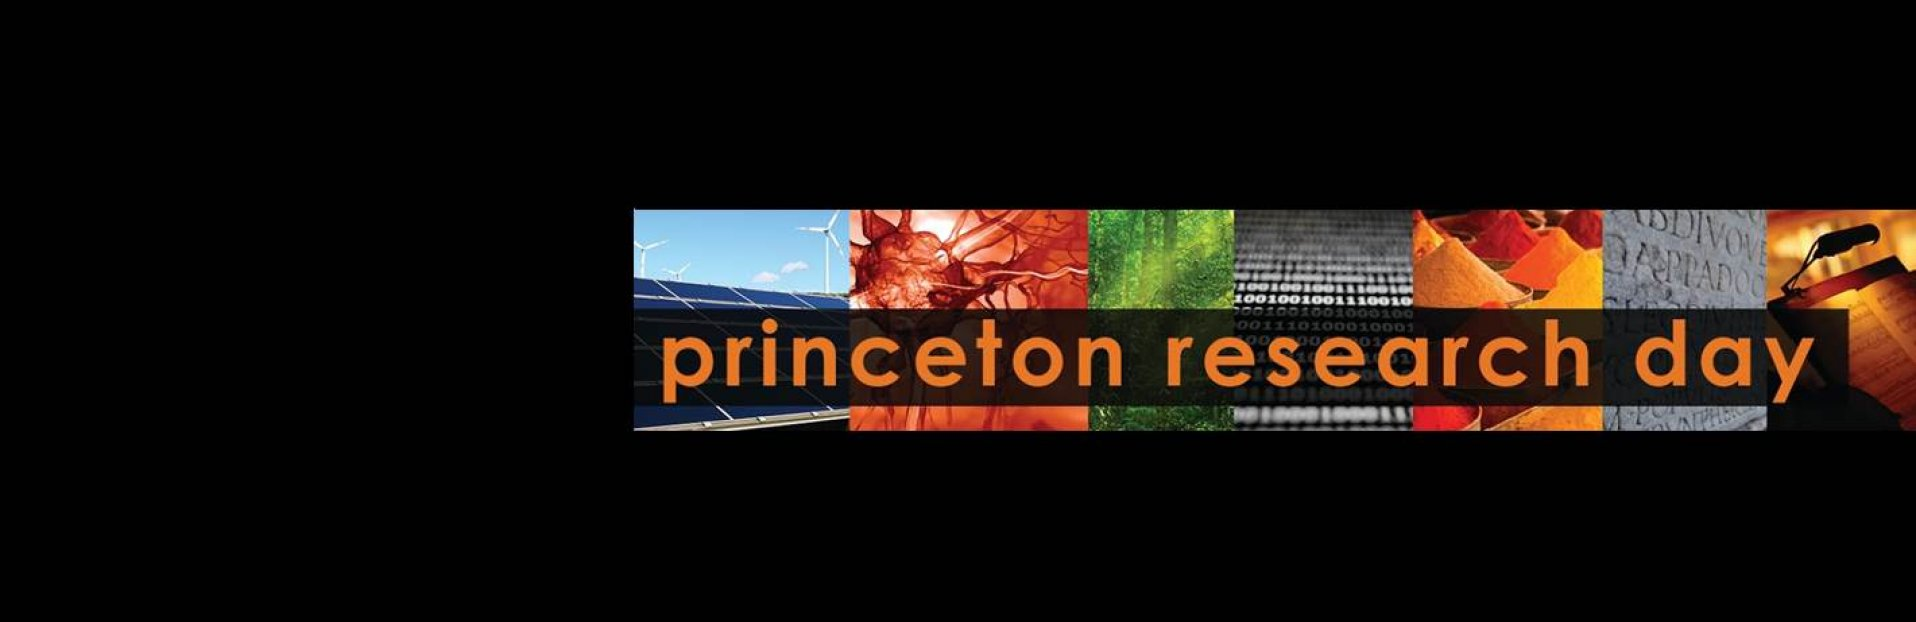 Princeton Research Day banner